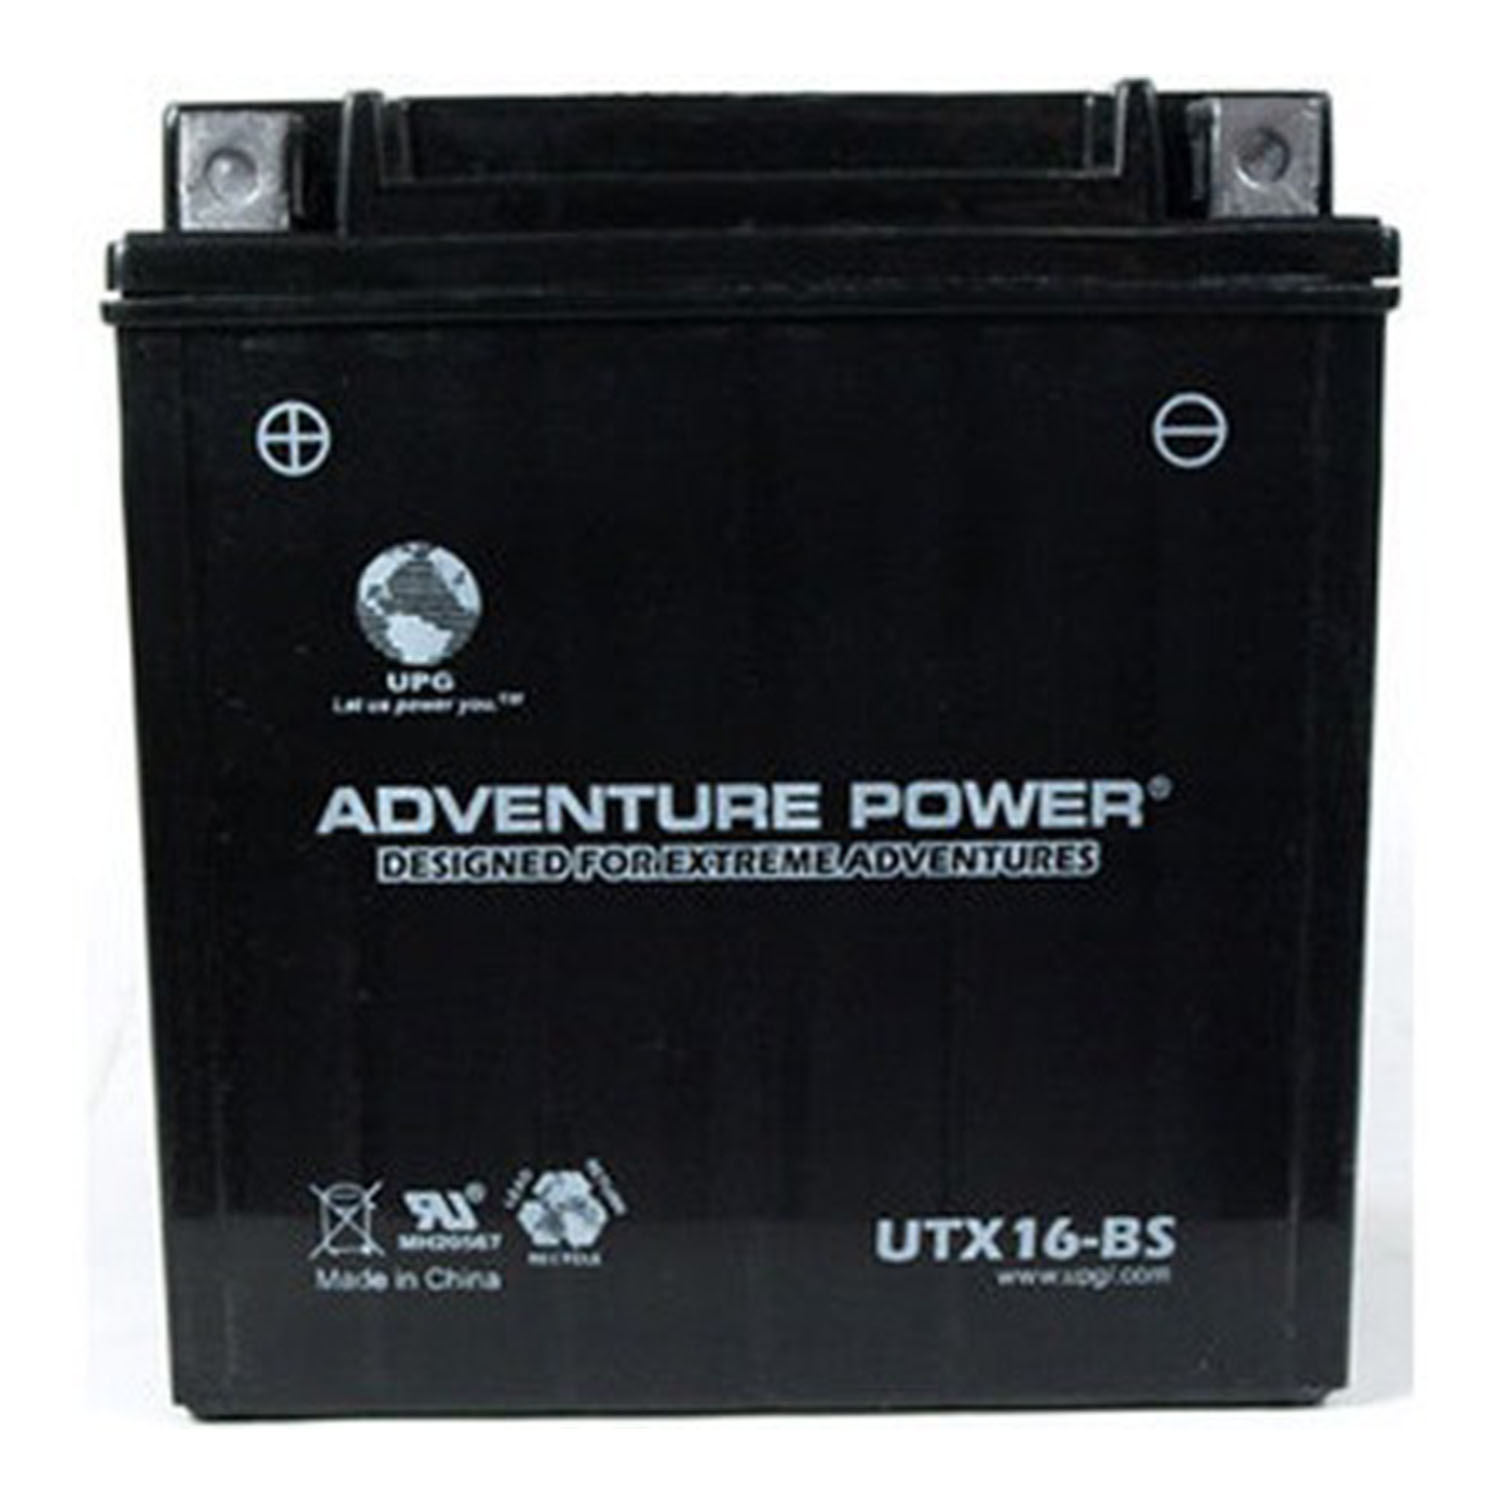 UTX16-BS 12V 14AH SLA Battery for Suzuki LT-A500F Vinson 4WD '02-03